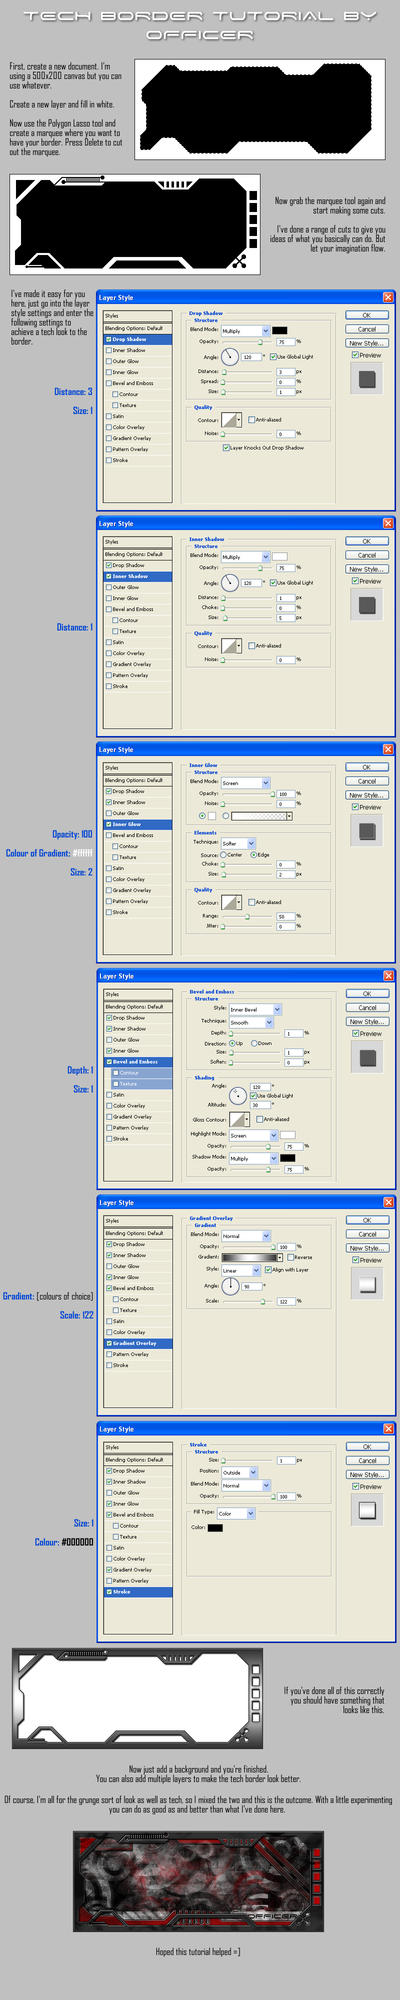 Photoshop tech border tutorial by officerng on deviantart photoshop tech border tutorial by officerng baditri Images